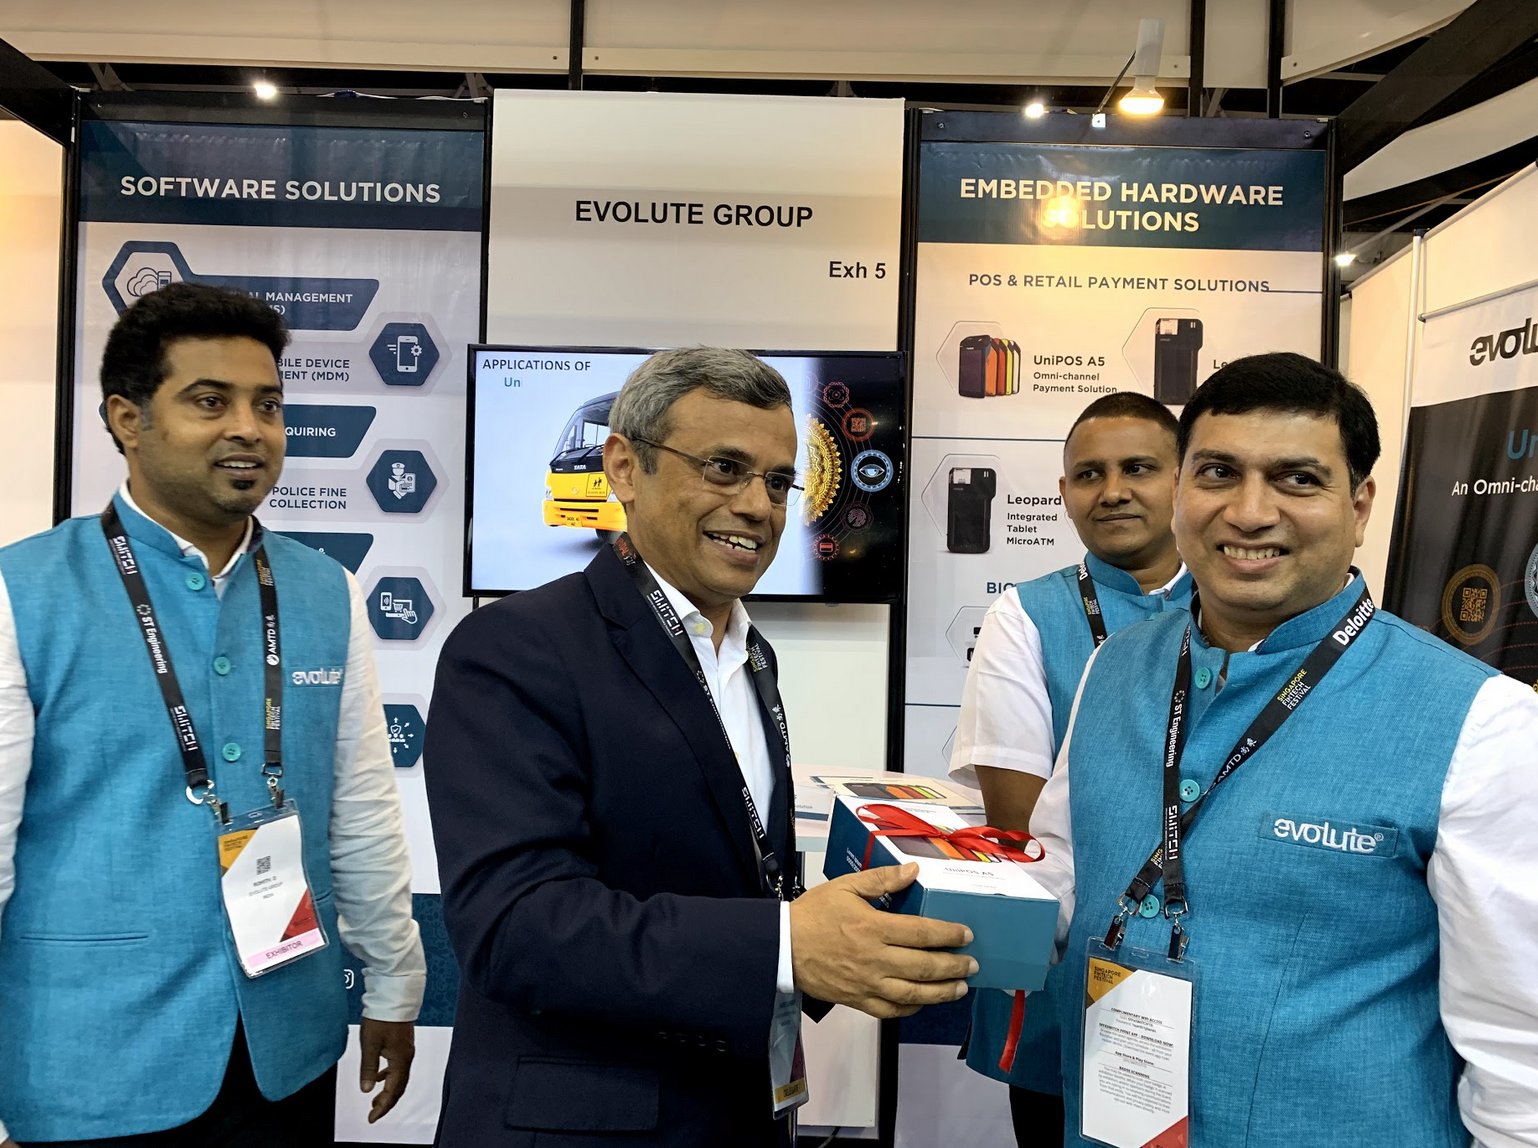 HCI Jawed Ashraf makes a point with an Evolute Point of Sales (POS) device. To his left is Parag Mehta, Founder and CEO, Evolute Group Photo: Connected to India